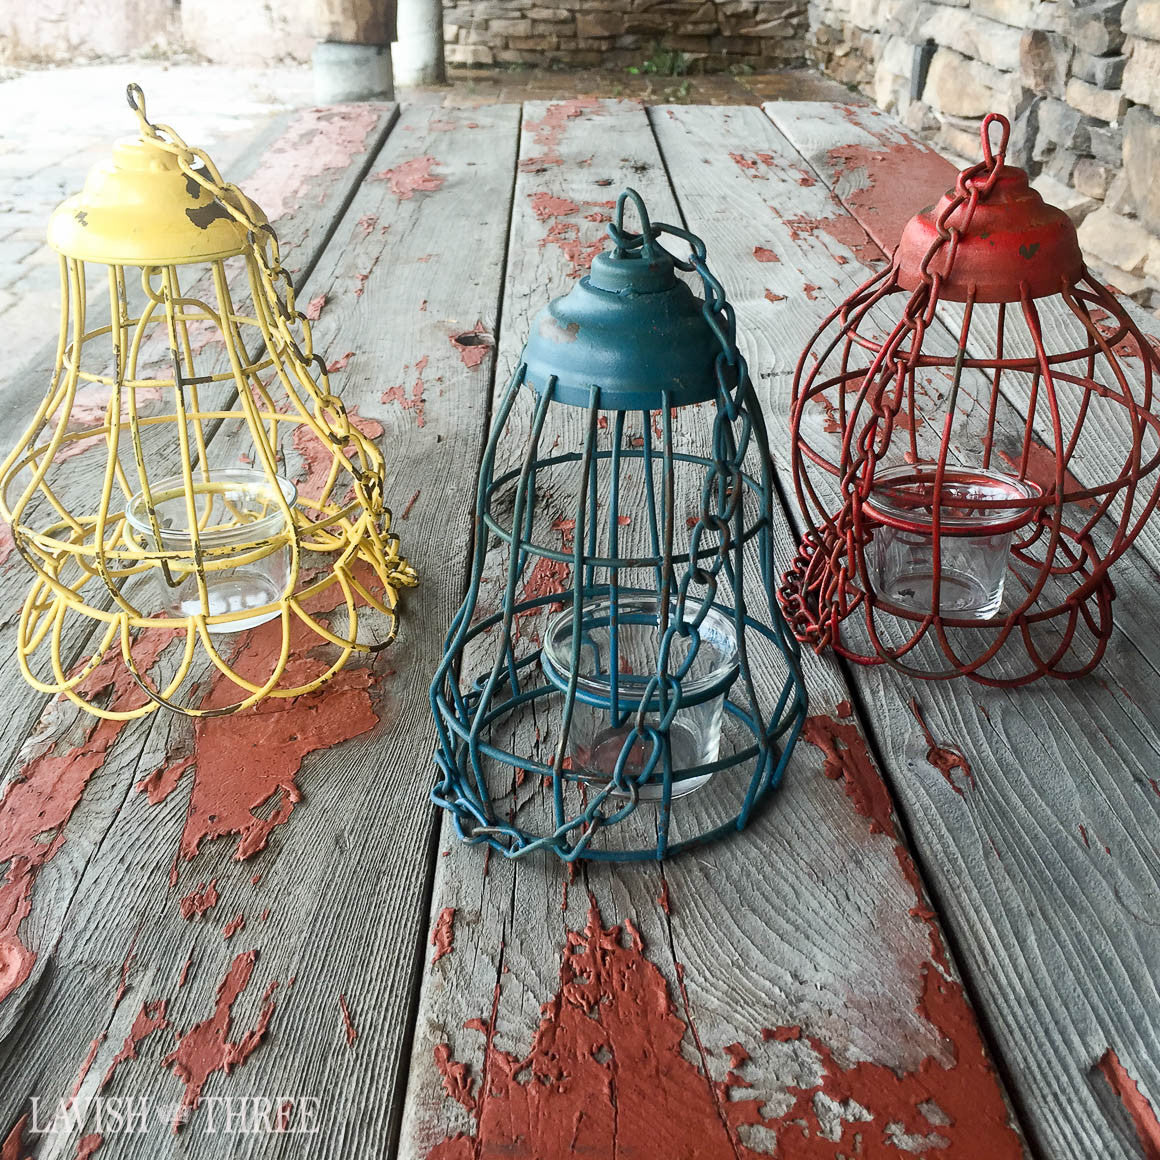 Vintage hanging garden metal lanterns votive candle holder red yellow blue